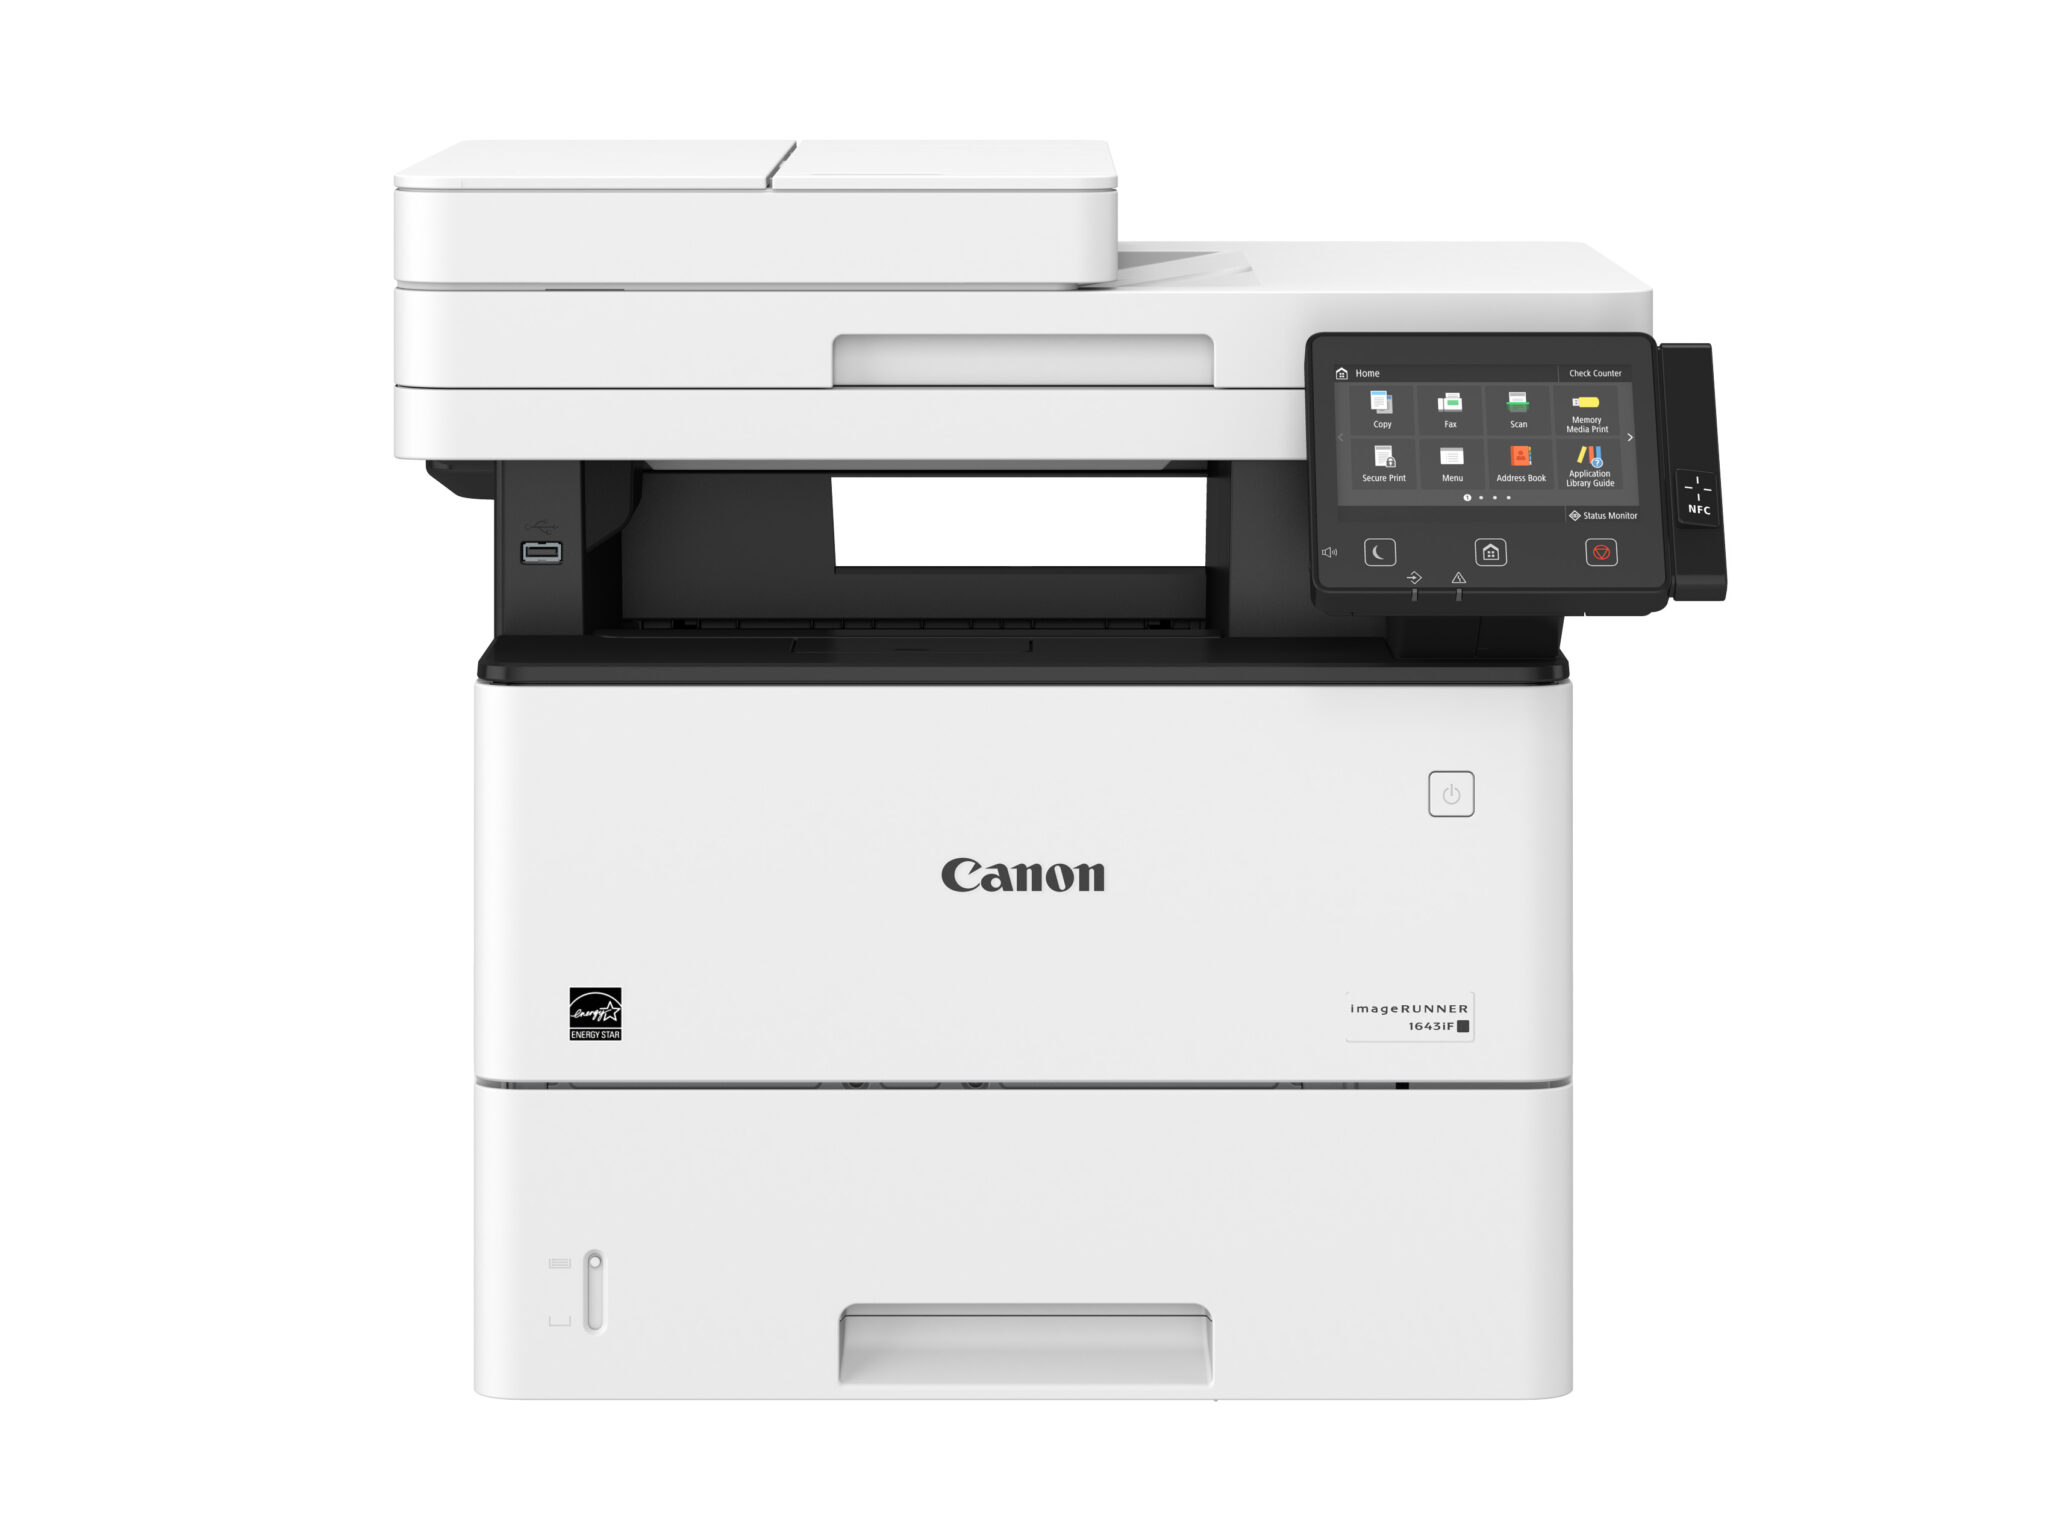 Canon imageRUNNER 1400 series